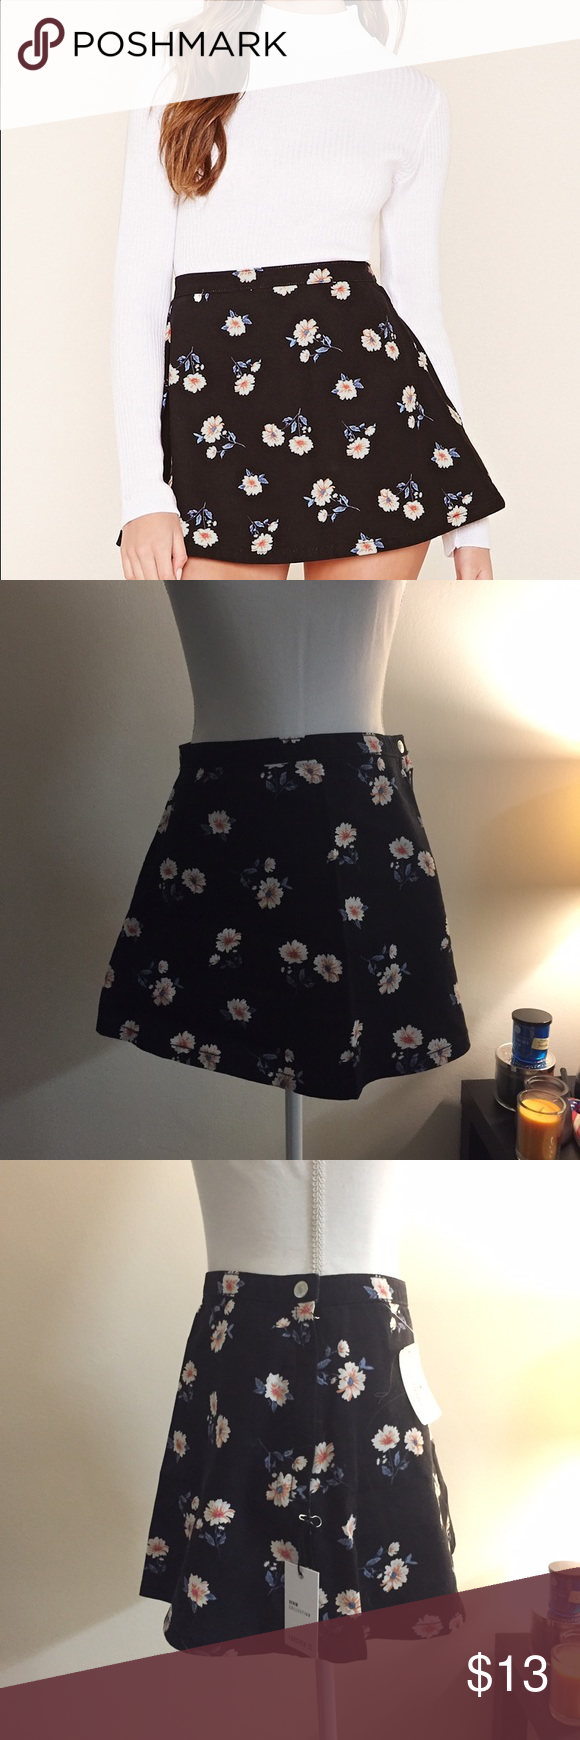 Black denim floral mini skirt Details A Mini Skirt Crafted From Denim With An Allover Floral Pattern And An Invisible Side Zipper With A Matte Button At The Waist. Content + Care - 100% Cotton  - Machine Wash Cold  - Made In China Forever 21 Skirts Mini